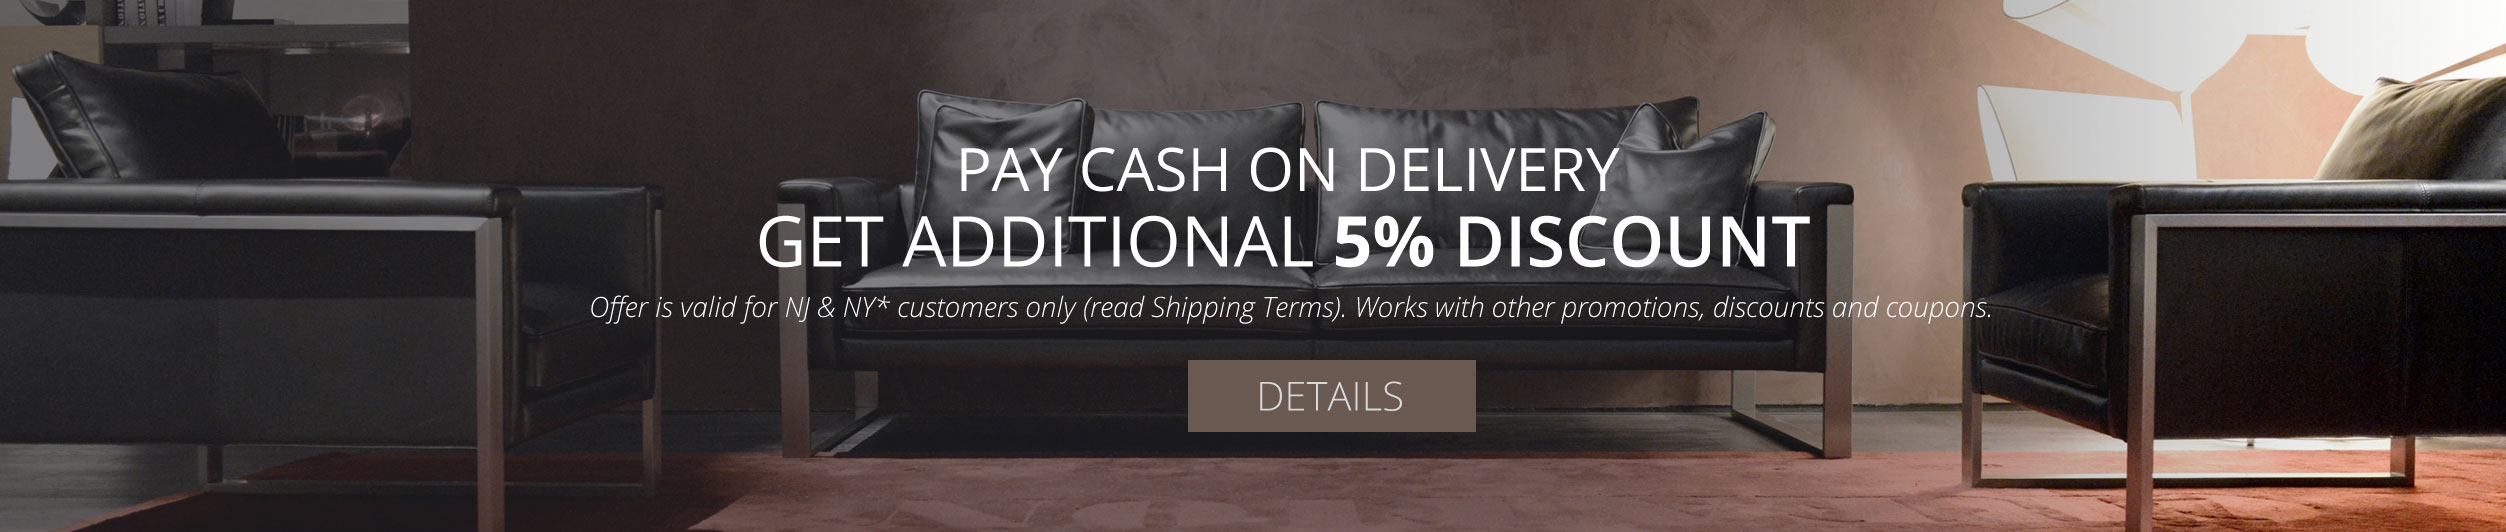 New York & New Jersey : Pay Cash on Dleivery and Get 5% additional Discount